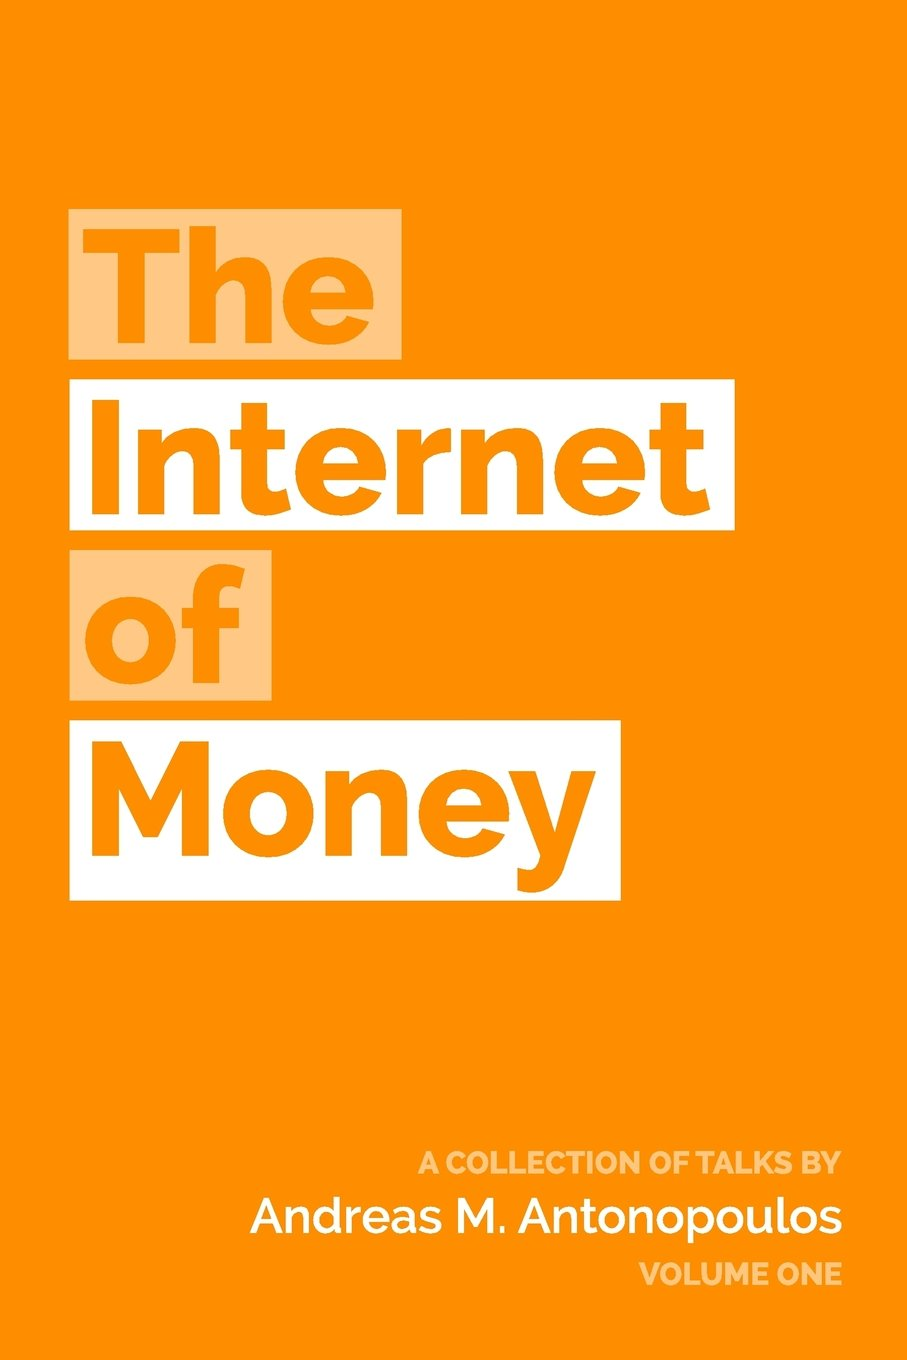 The Internet of Money by Andreas M. Antonopoulos